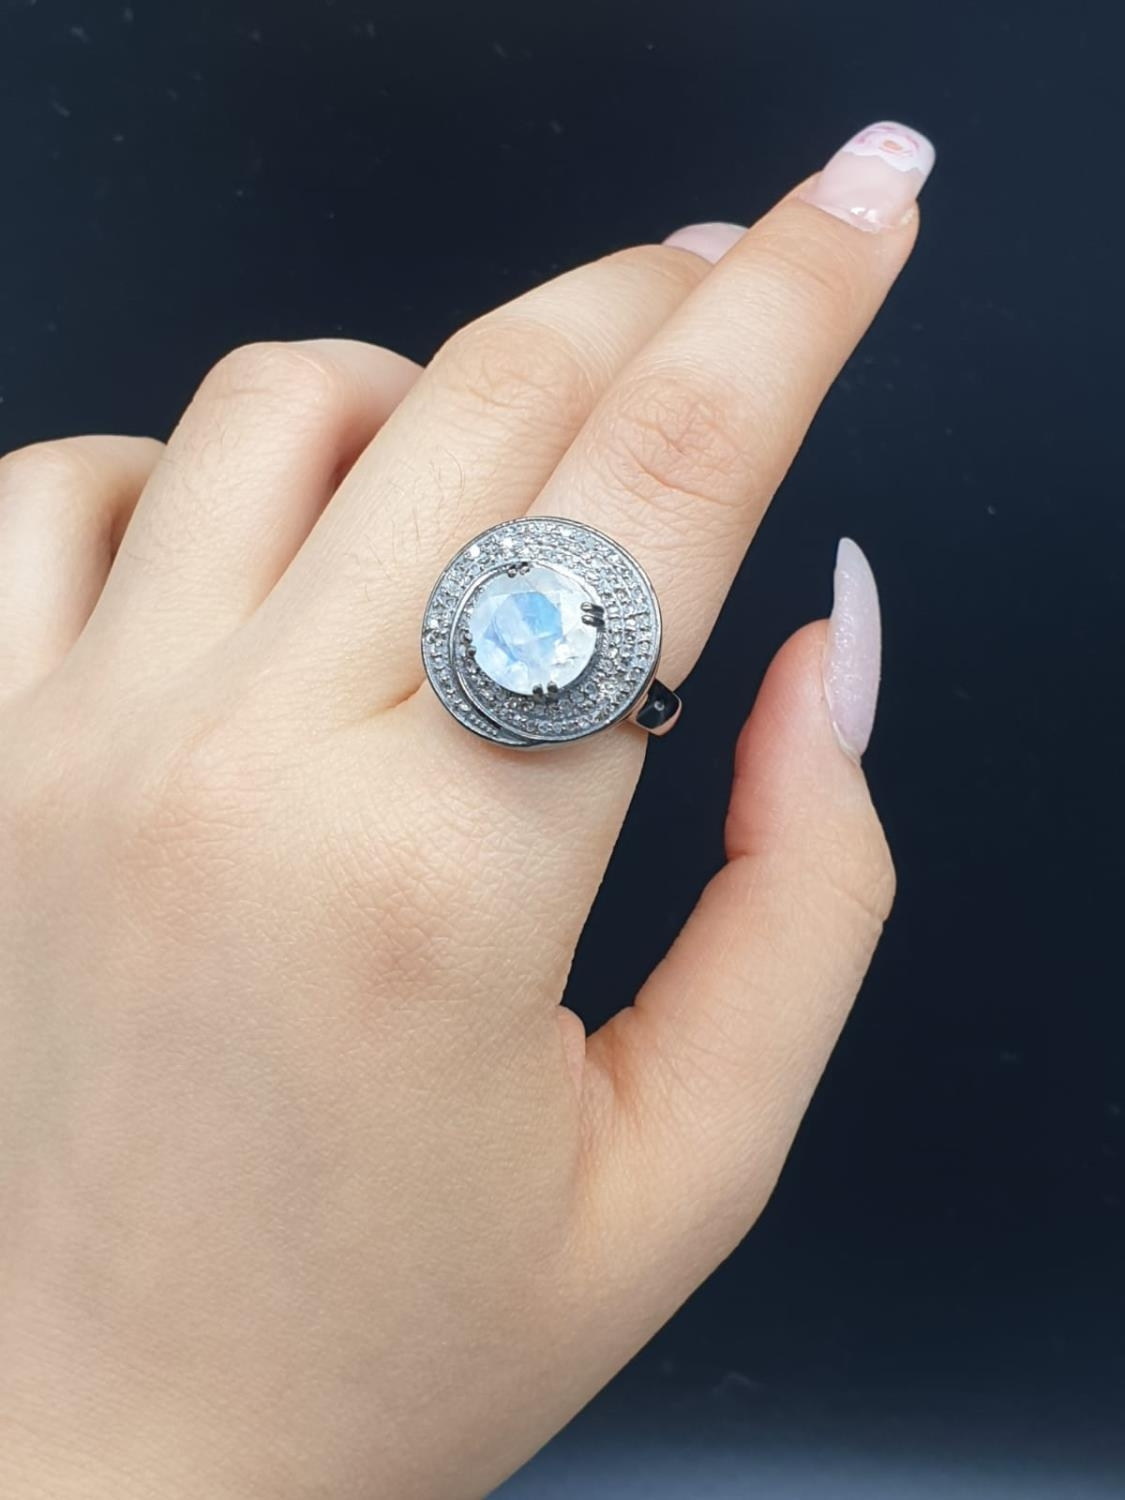 4 Ct Moonstone Ring with 0.75 Ct Rose cut diamonds. Blackened silver. - Image 6 of 8